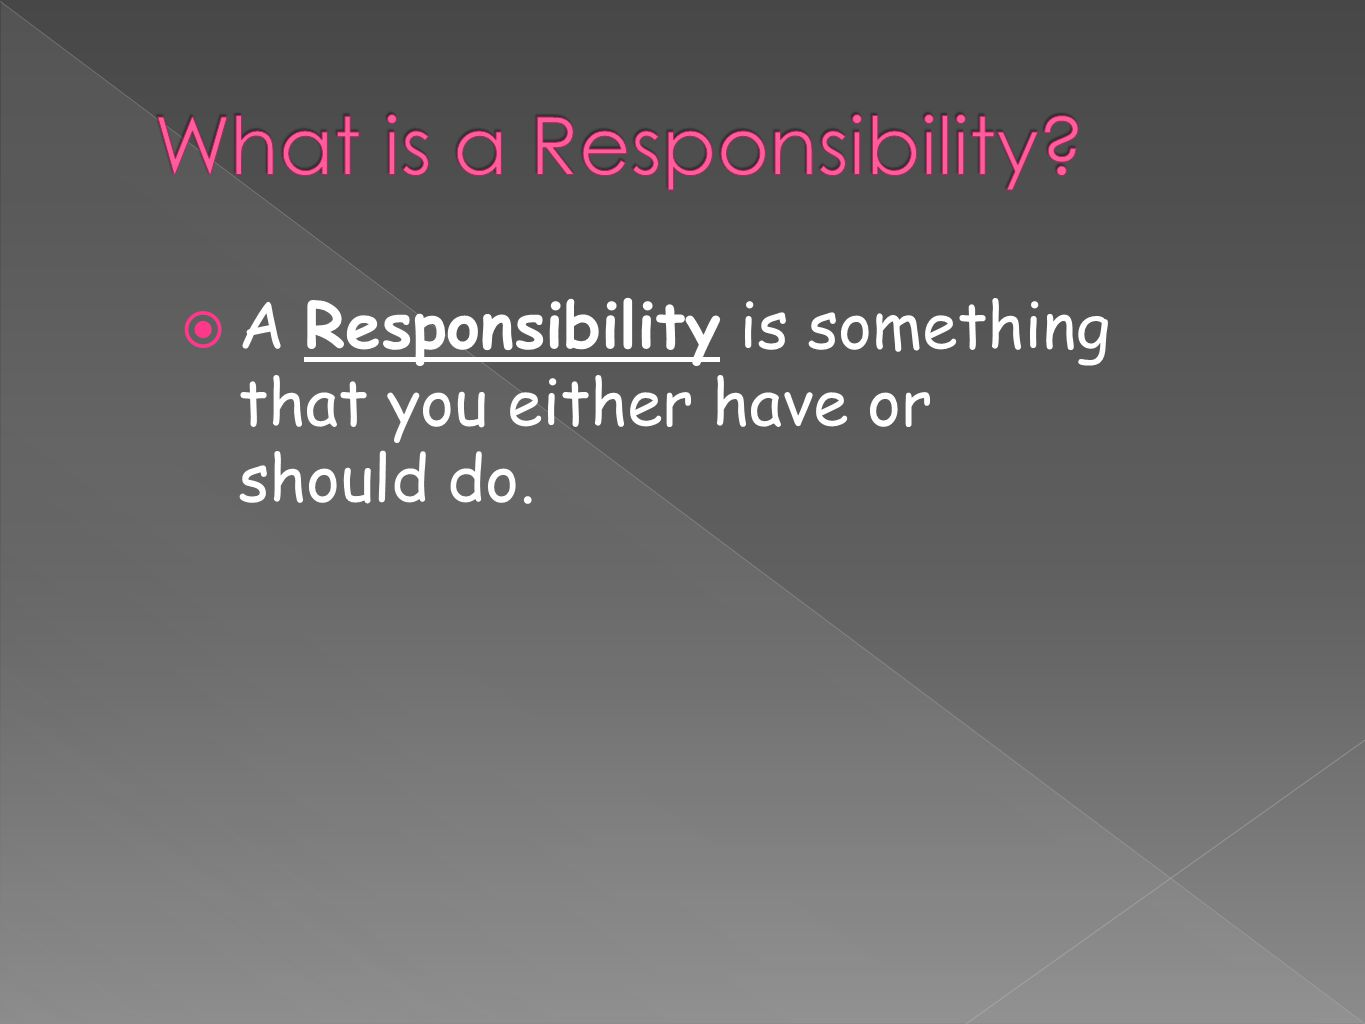  A Responsibility is something that you either have or should do.